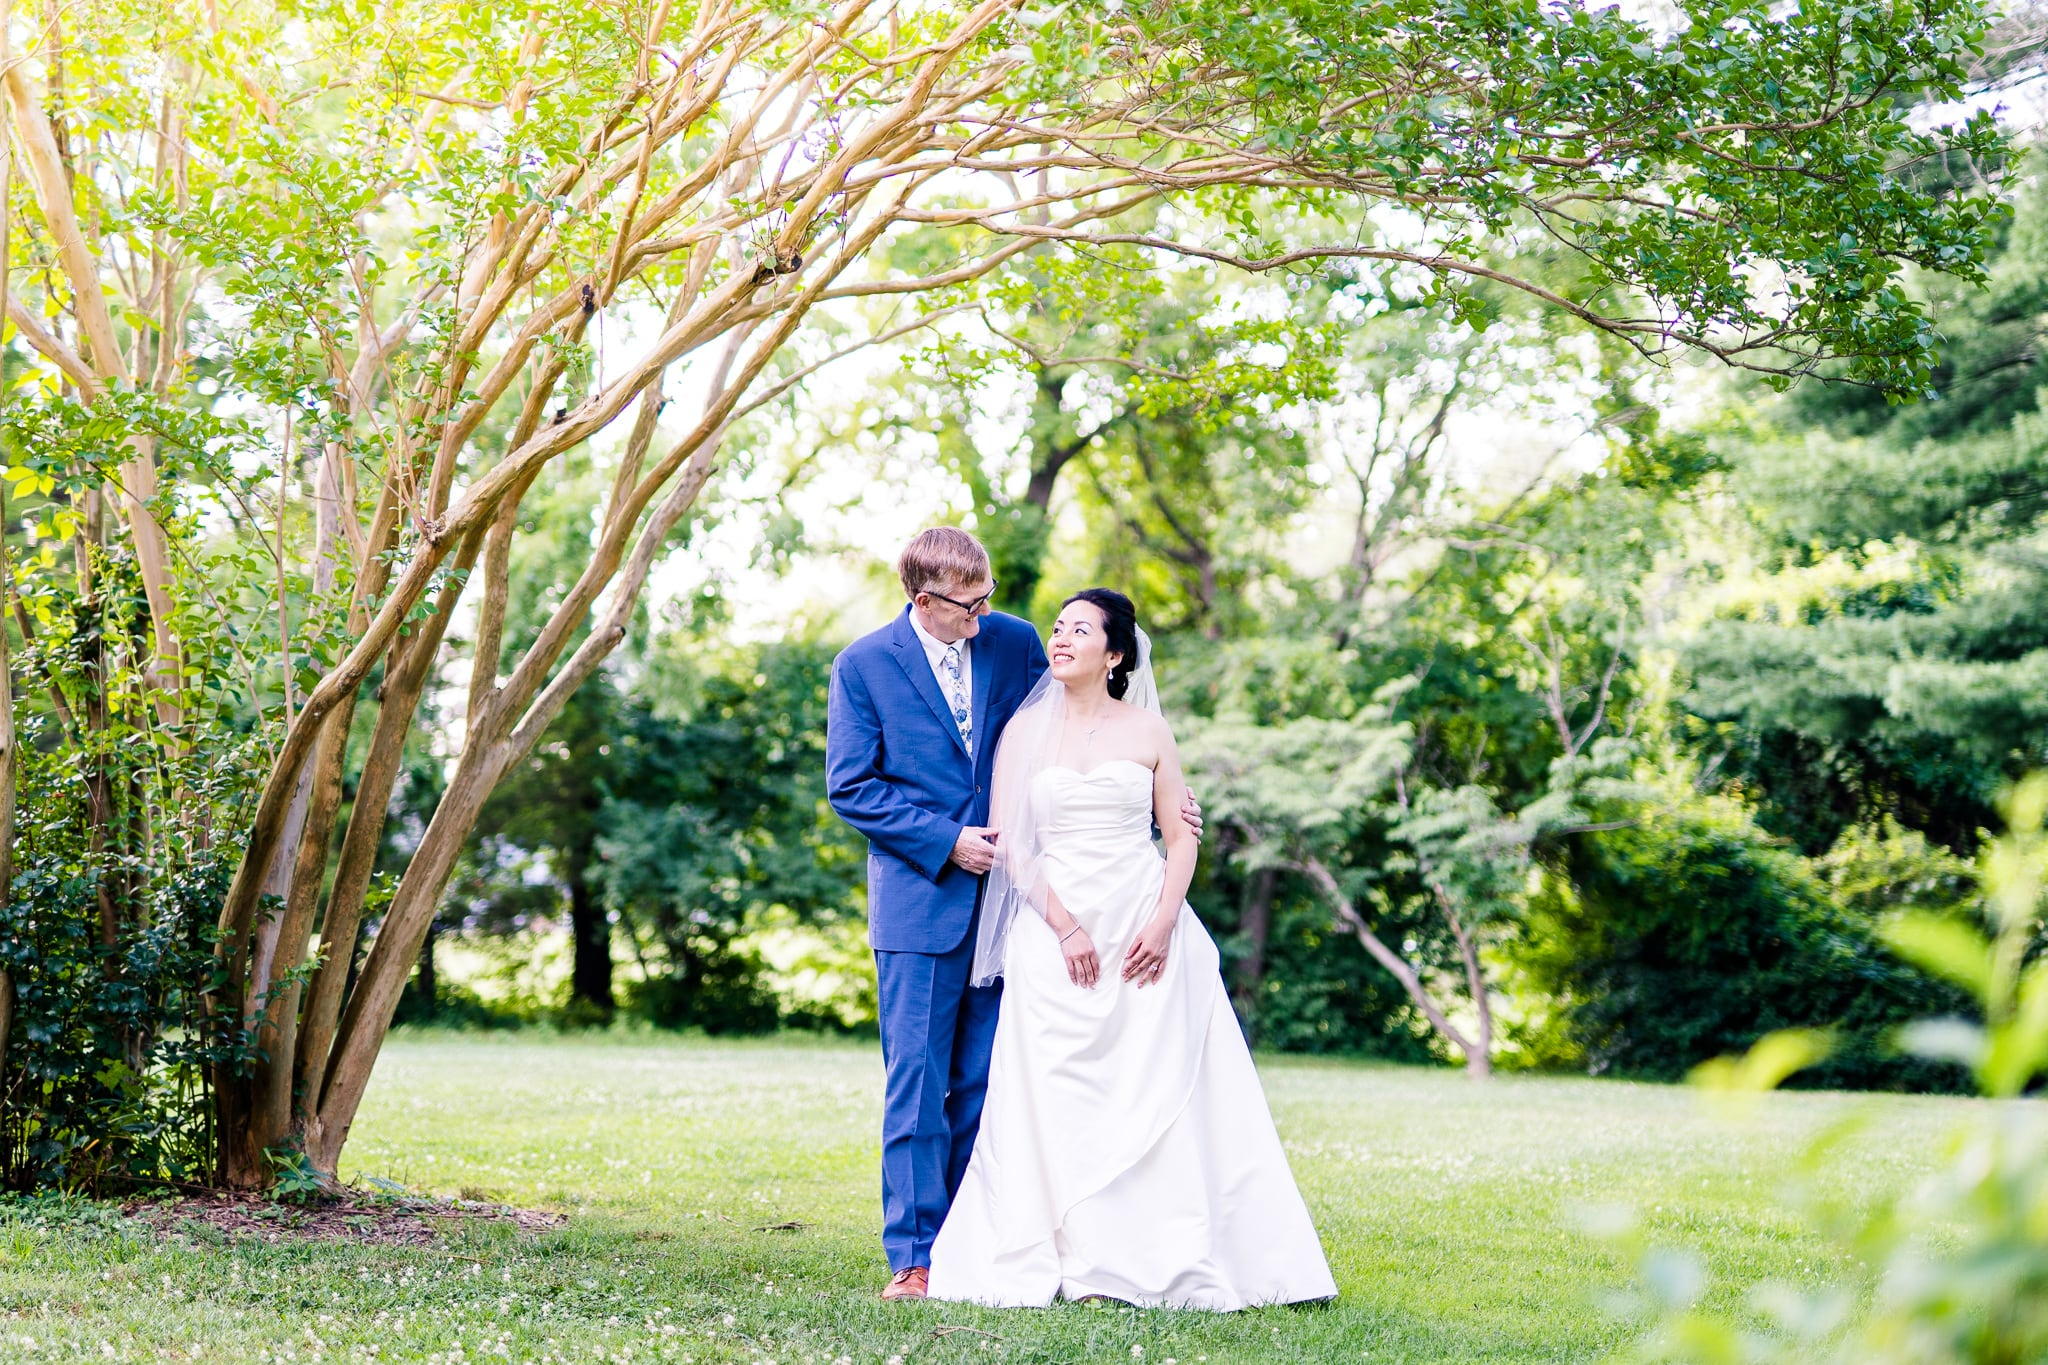 A Taiwanese bride poses with her groom among the greenery at Hunter House at Nottoway Park after their wedding in Vienna, Northern Virginia